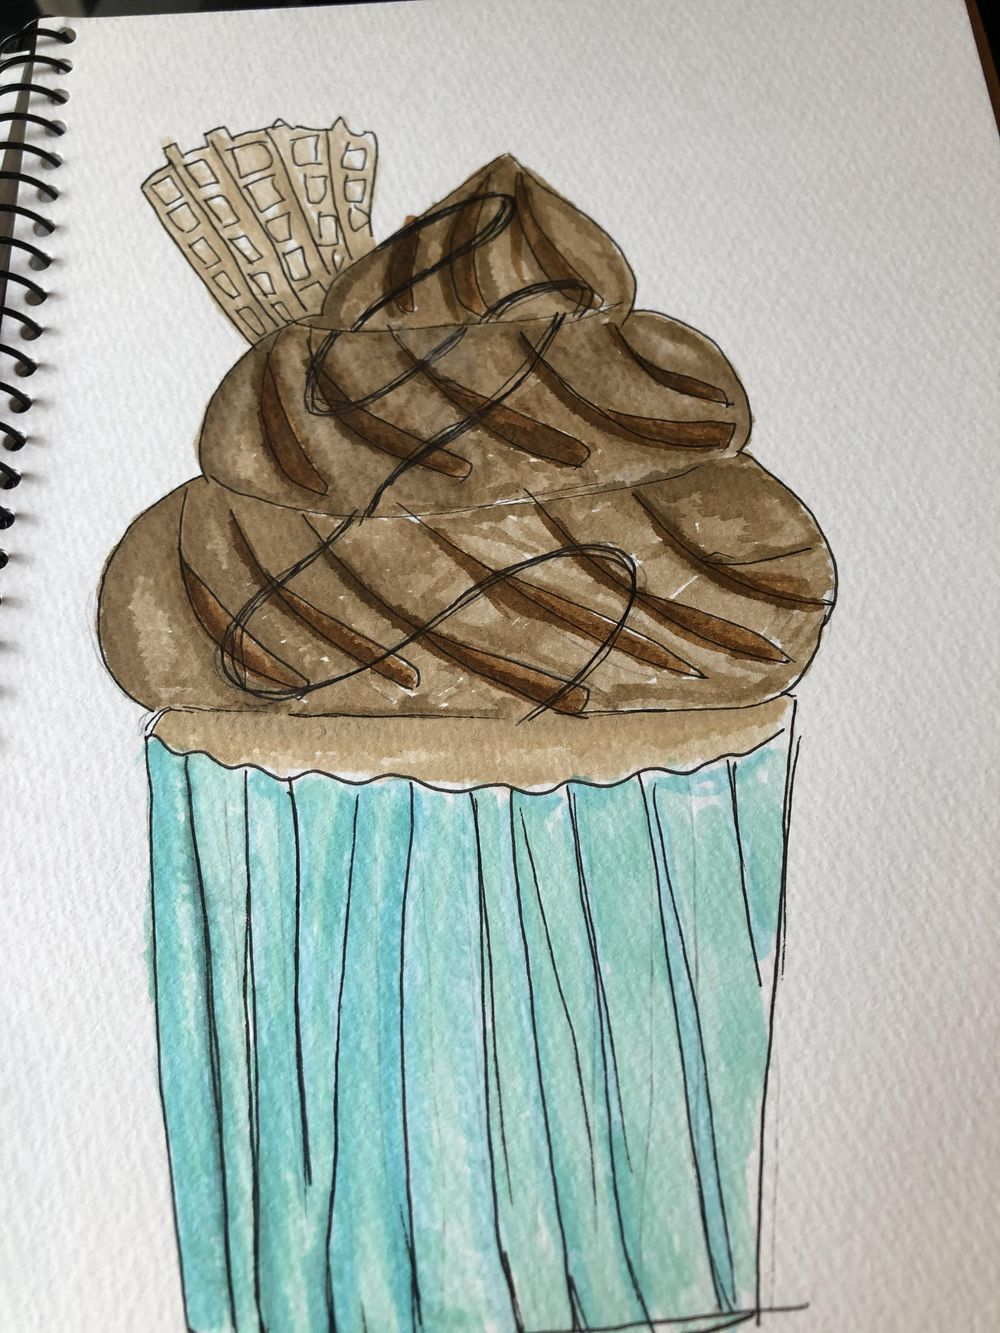 Cupcake - image 1 - student project